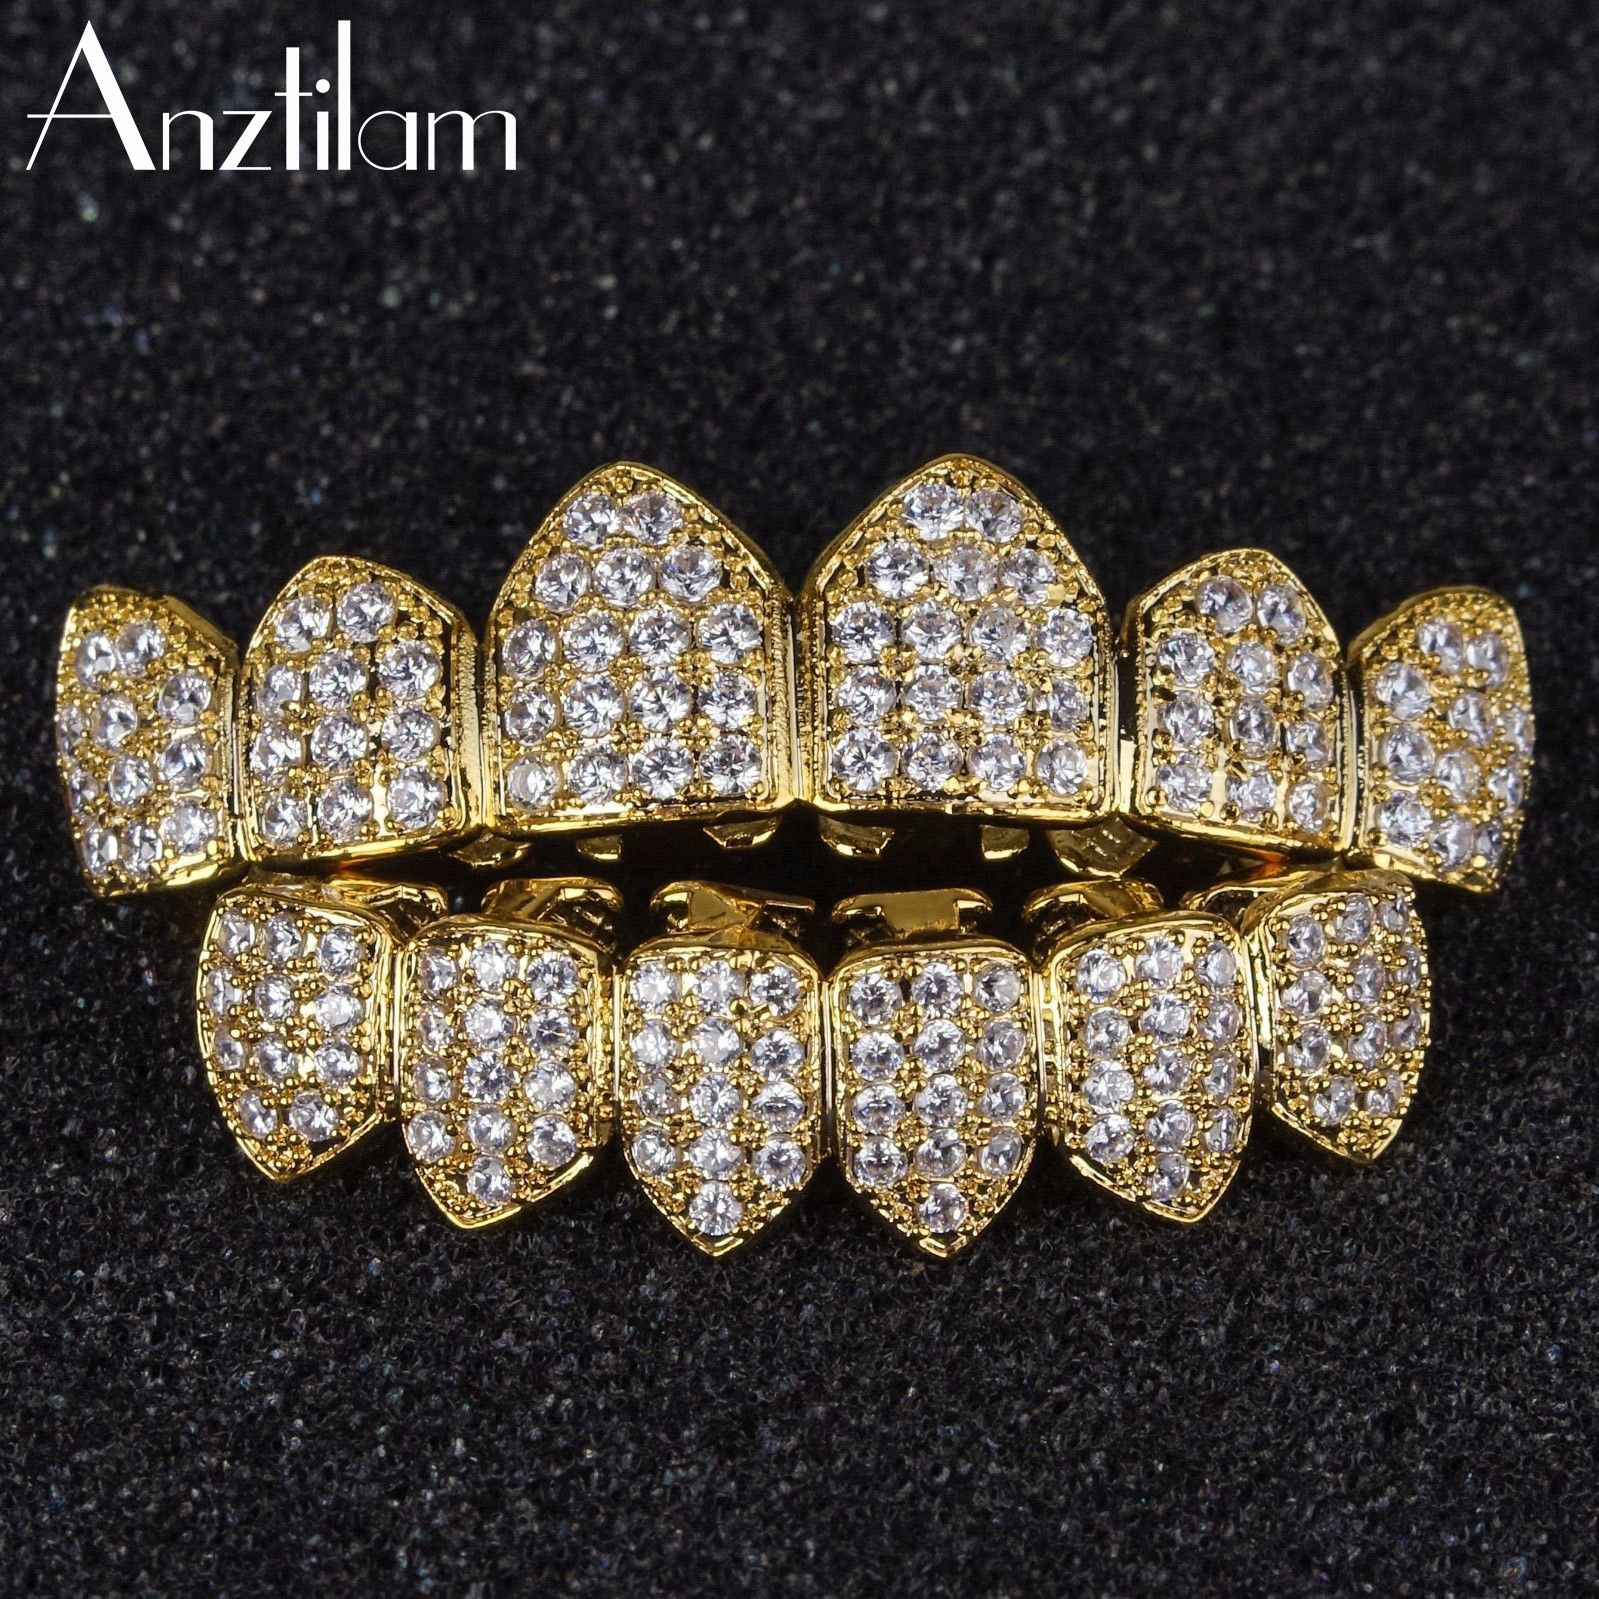 Hip Hop Micro Paved Bling Cubic Zirconia Iced Out Teeth Grillzs Top & Bottom Set Dental Grills Men�